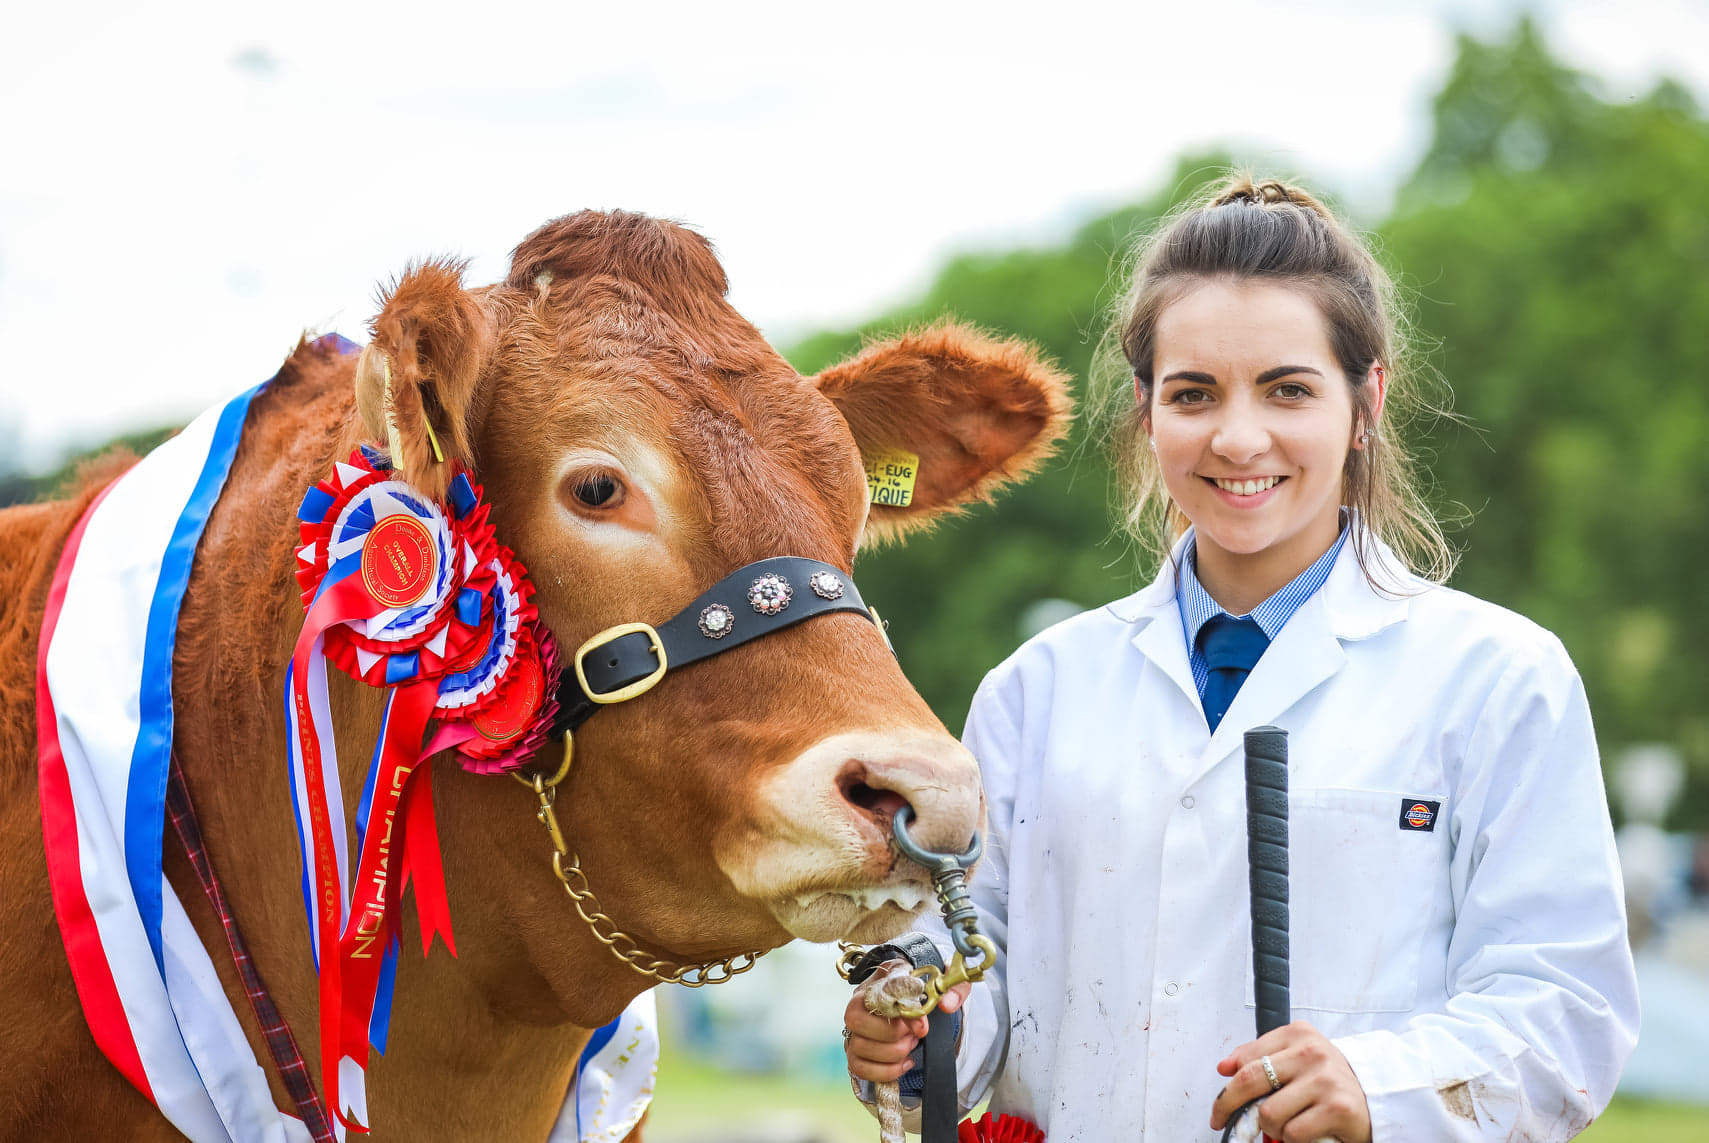 Young farmers look to the future